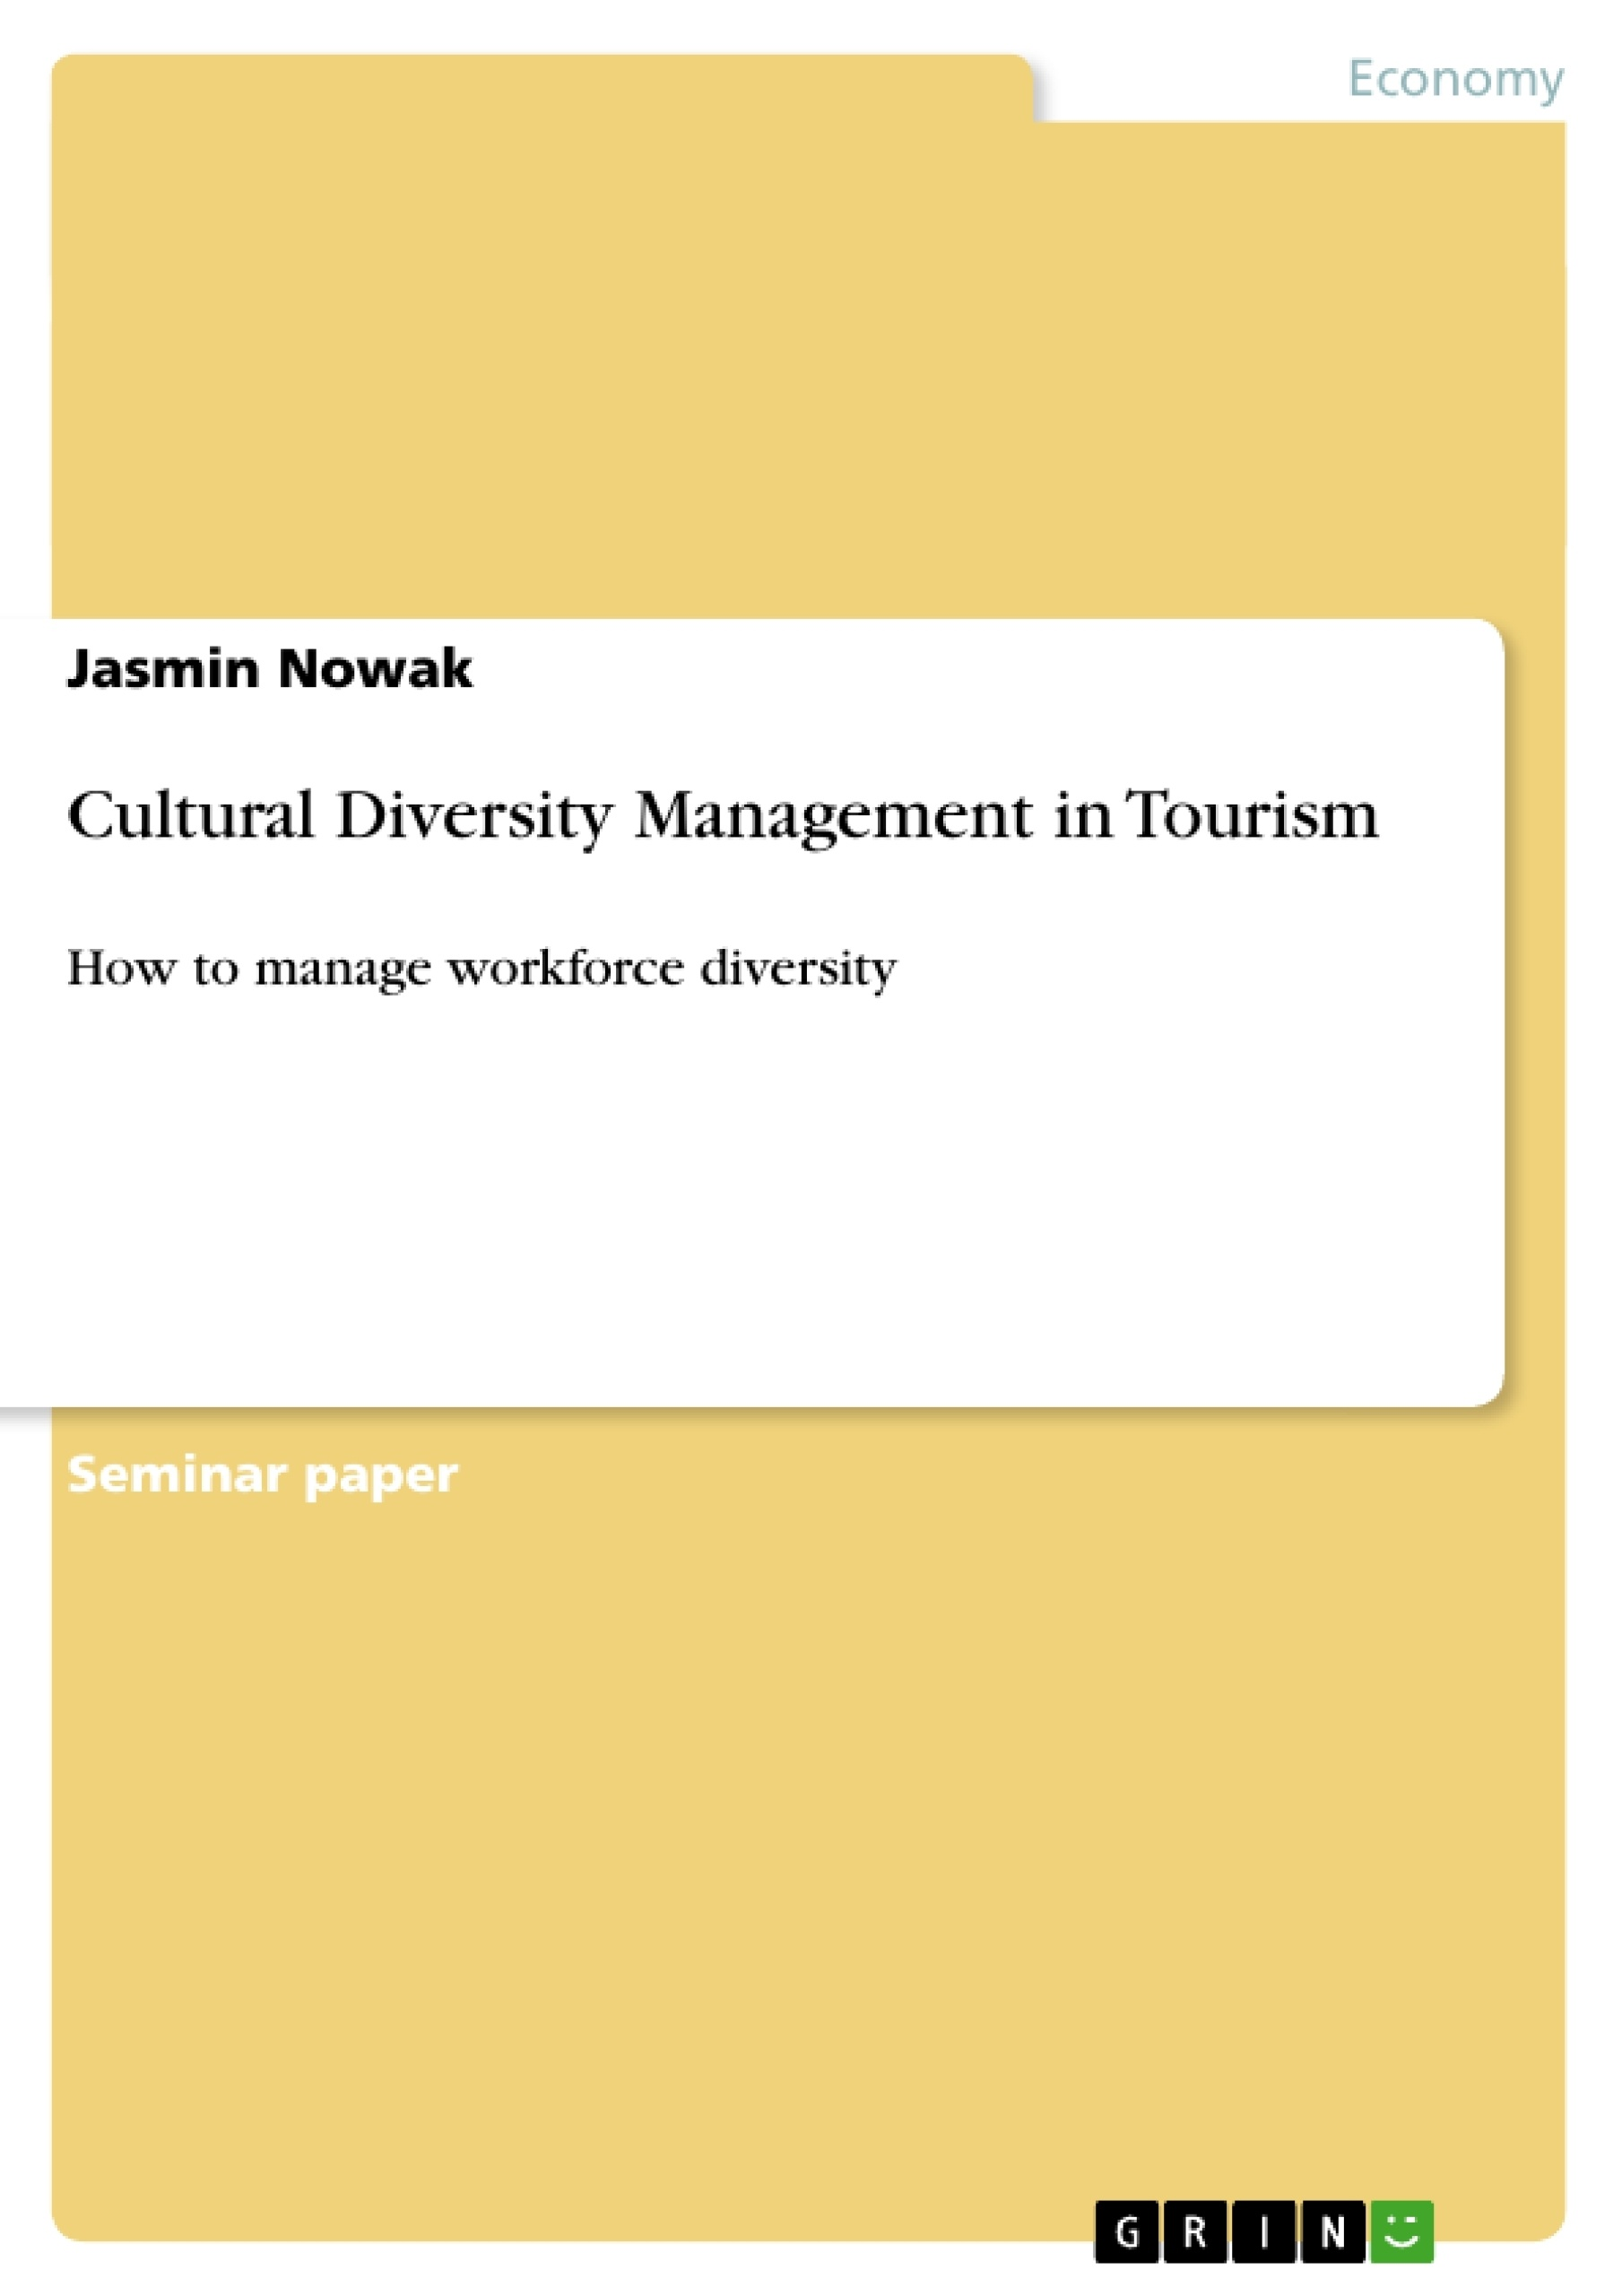 cultural diversity management in tourism publish your master s upload your own papers earn money and win an iphone 7